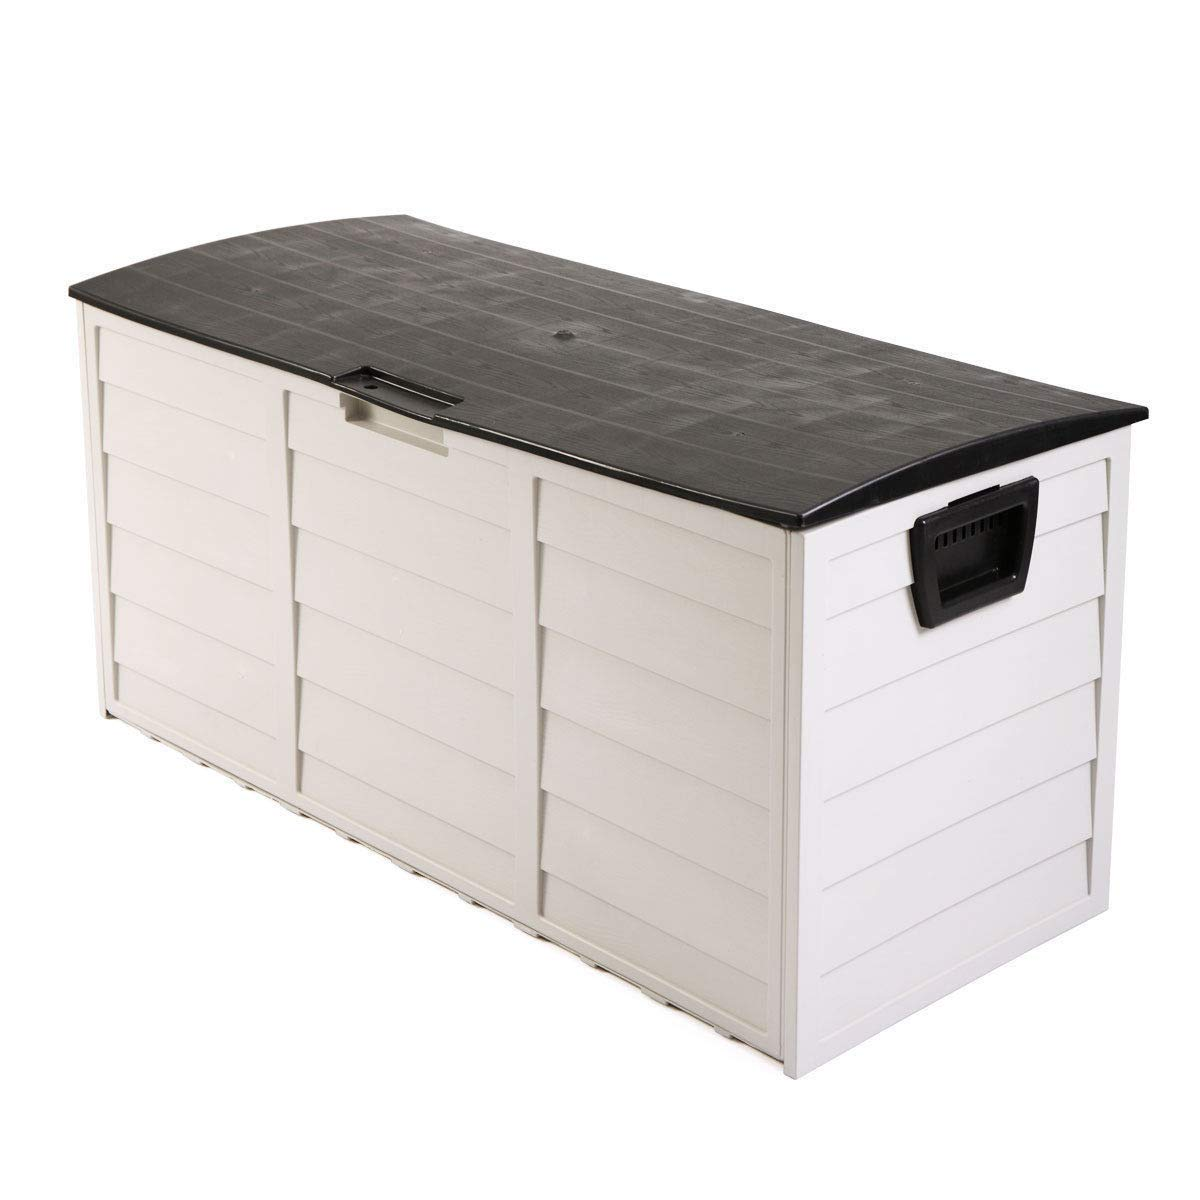 Eyesonme Deck Box Storage Outdoor Patio Garage Shed Tool Bench Container 44', 79 Gallon